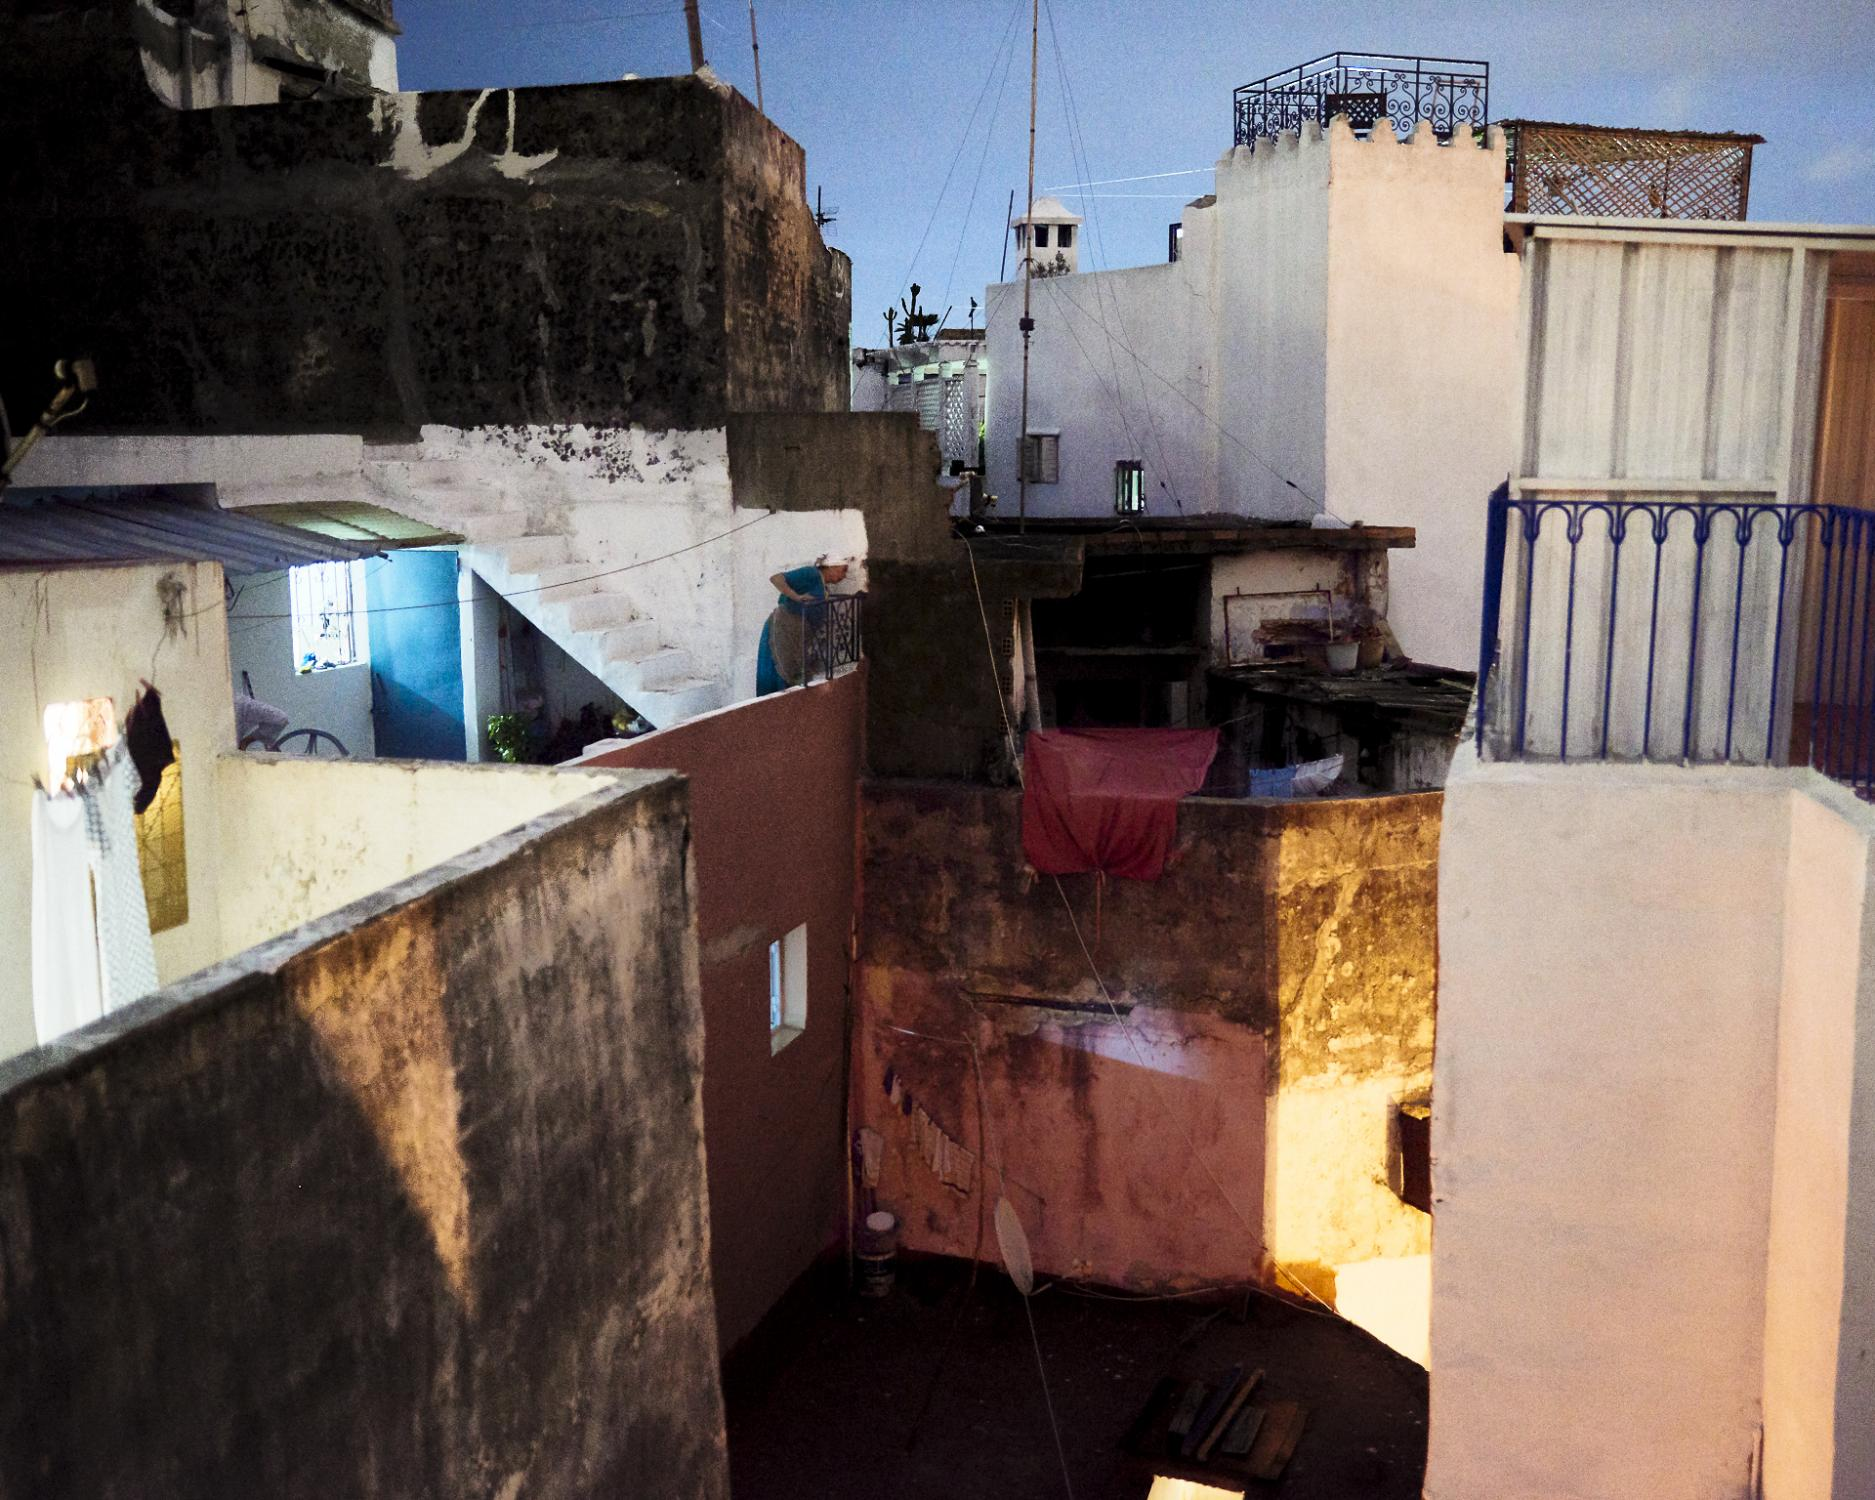 On the winding streets of the medina, many abandoned apartments are often 'squatted' by illegal immigrants, mostly coming from sub-Saharian countries. The majority already lived on improvised camps at the forest nearby Park Rmilat, in Tangier. Tangier, Morocco. 2019.